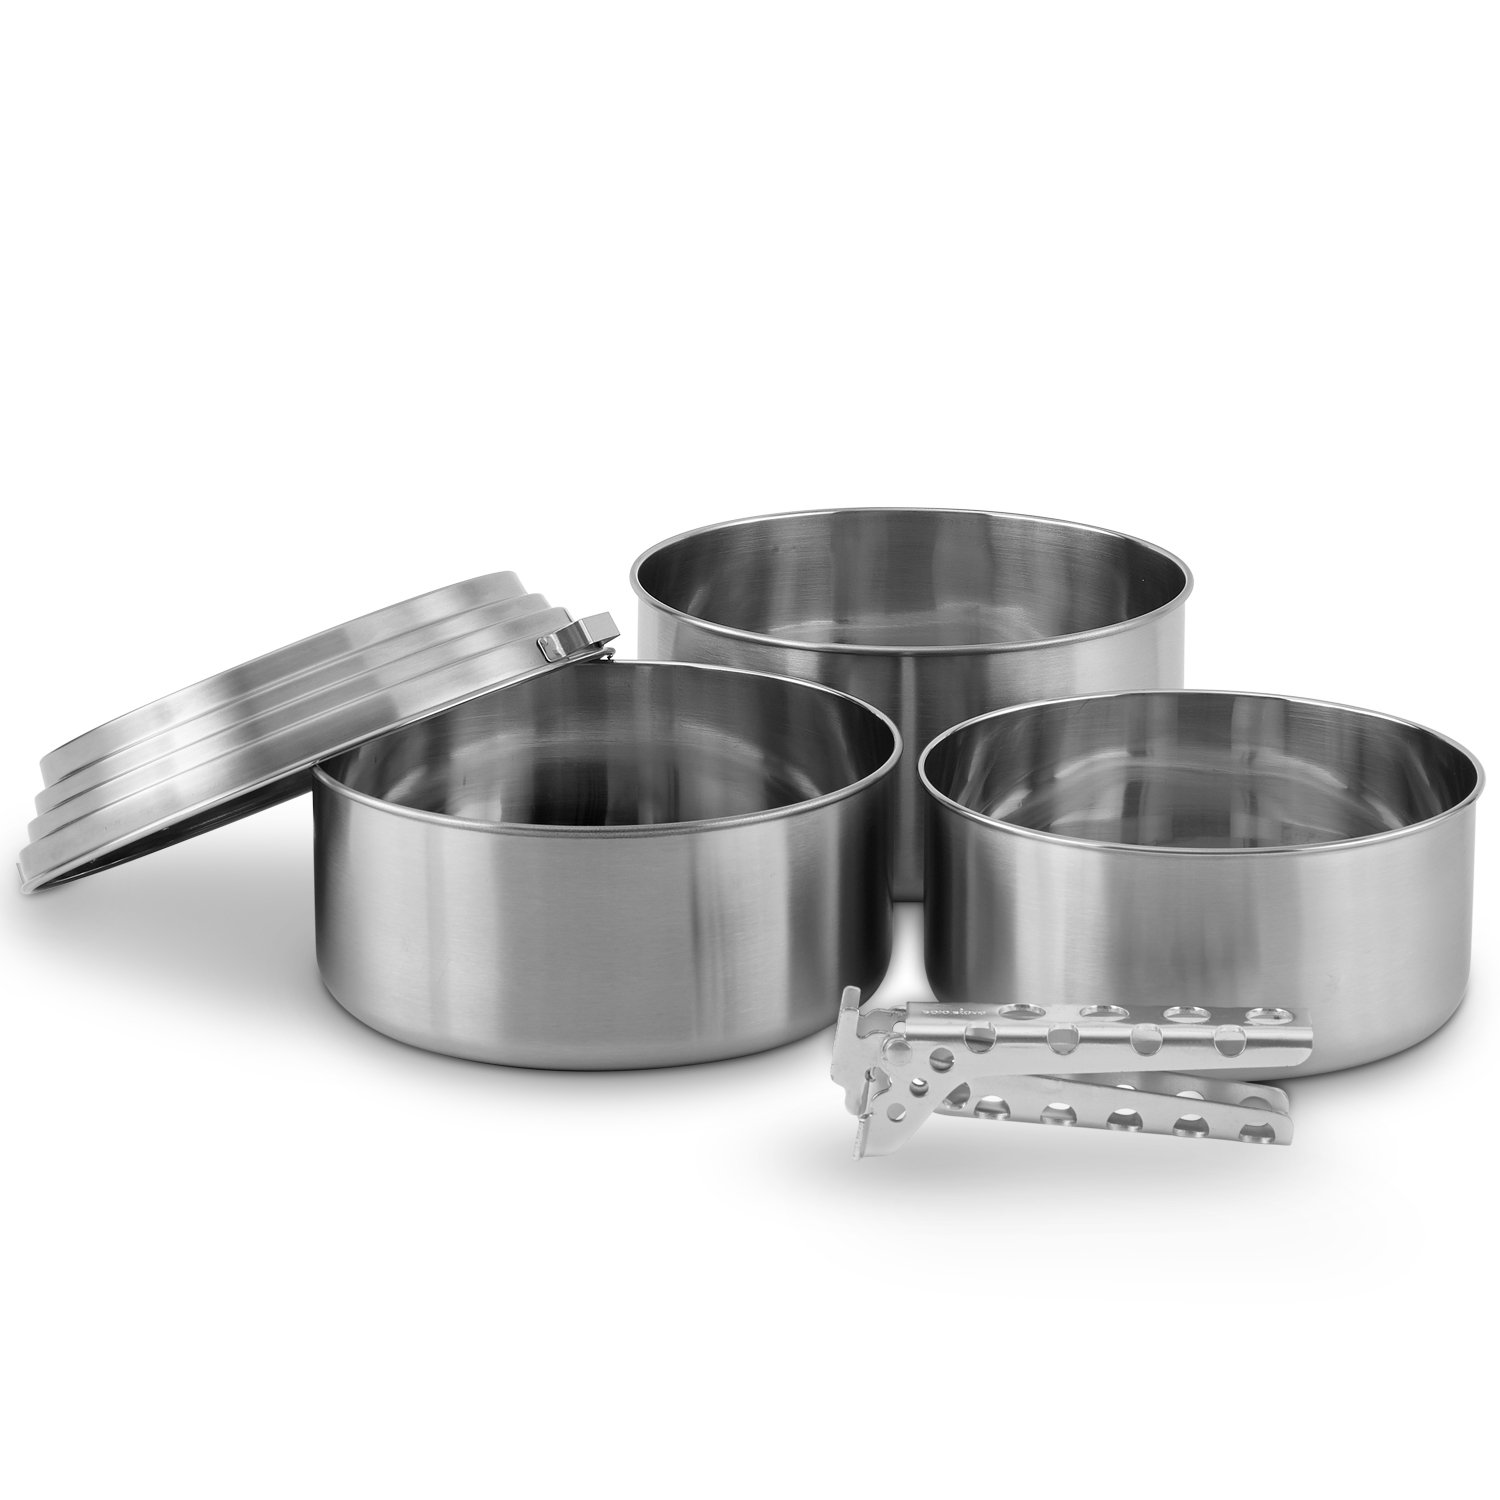 Solo Stove 3 Pot Set - Stainless Steel Camping Backpacking Cookware Kitchen Kit | Pot Gripper Included for Rocket Stove Camp Cooking